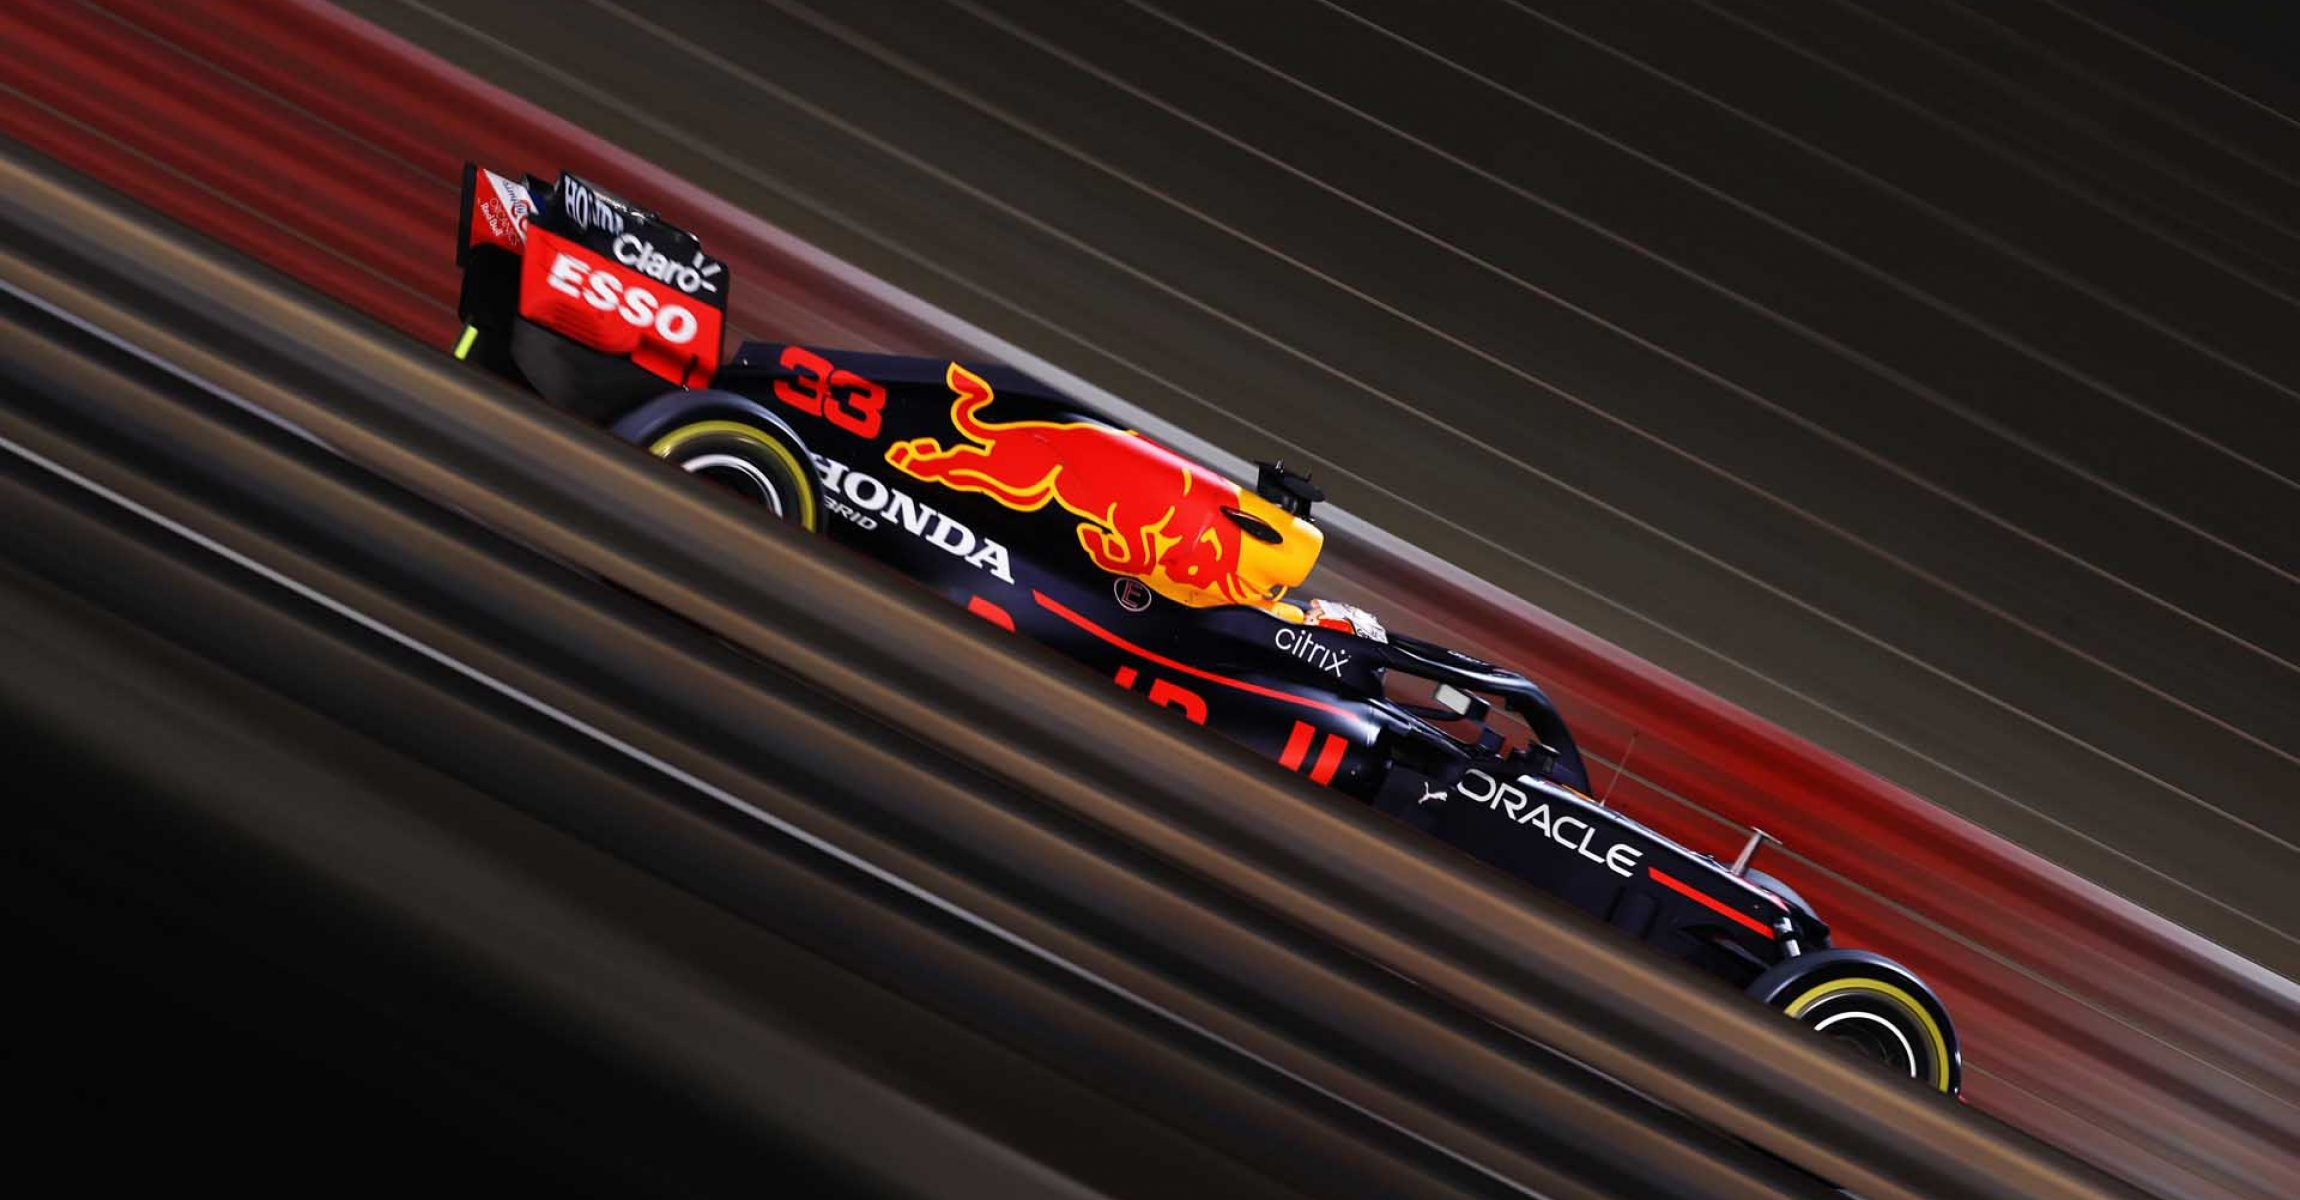 BAHRAIN, BAHRAIN - MARCH 28: Max Verstappen of the Netherlands driving the (33) Red Bull Racing RB16B Honda on track during the F1 Grand Prix of Bahrain at Bahrain International Circuit on March 28, 2021 in Bahrain, Bahrain. (Photo by Lars Baron/Getty Images)